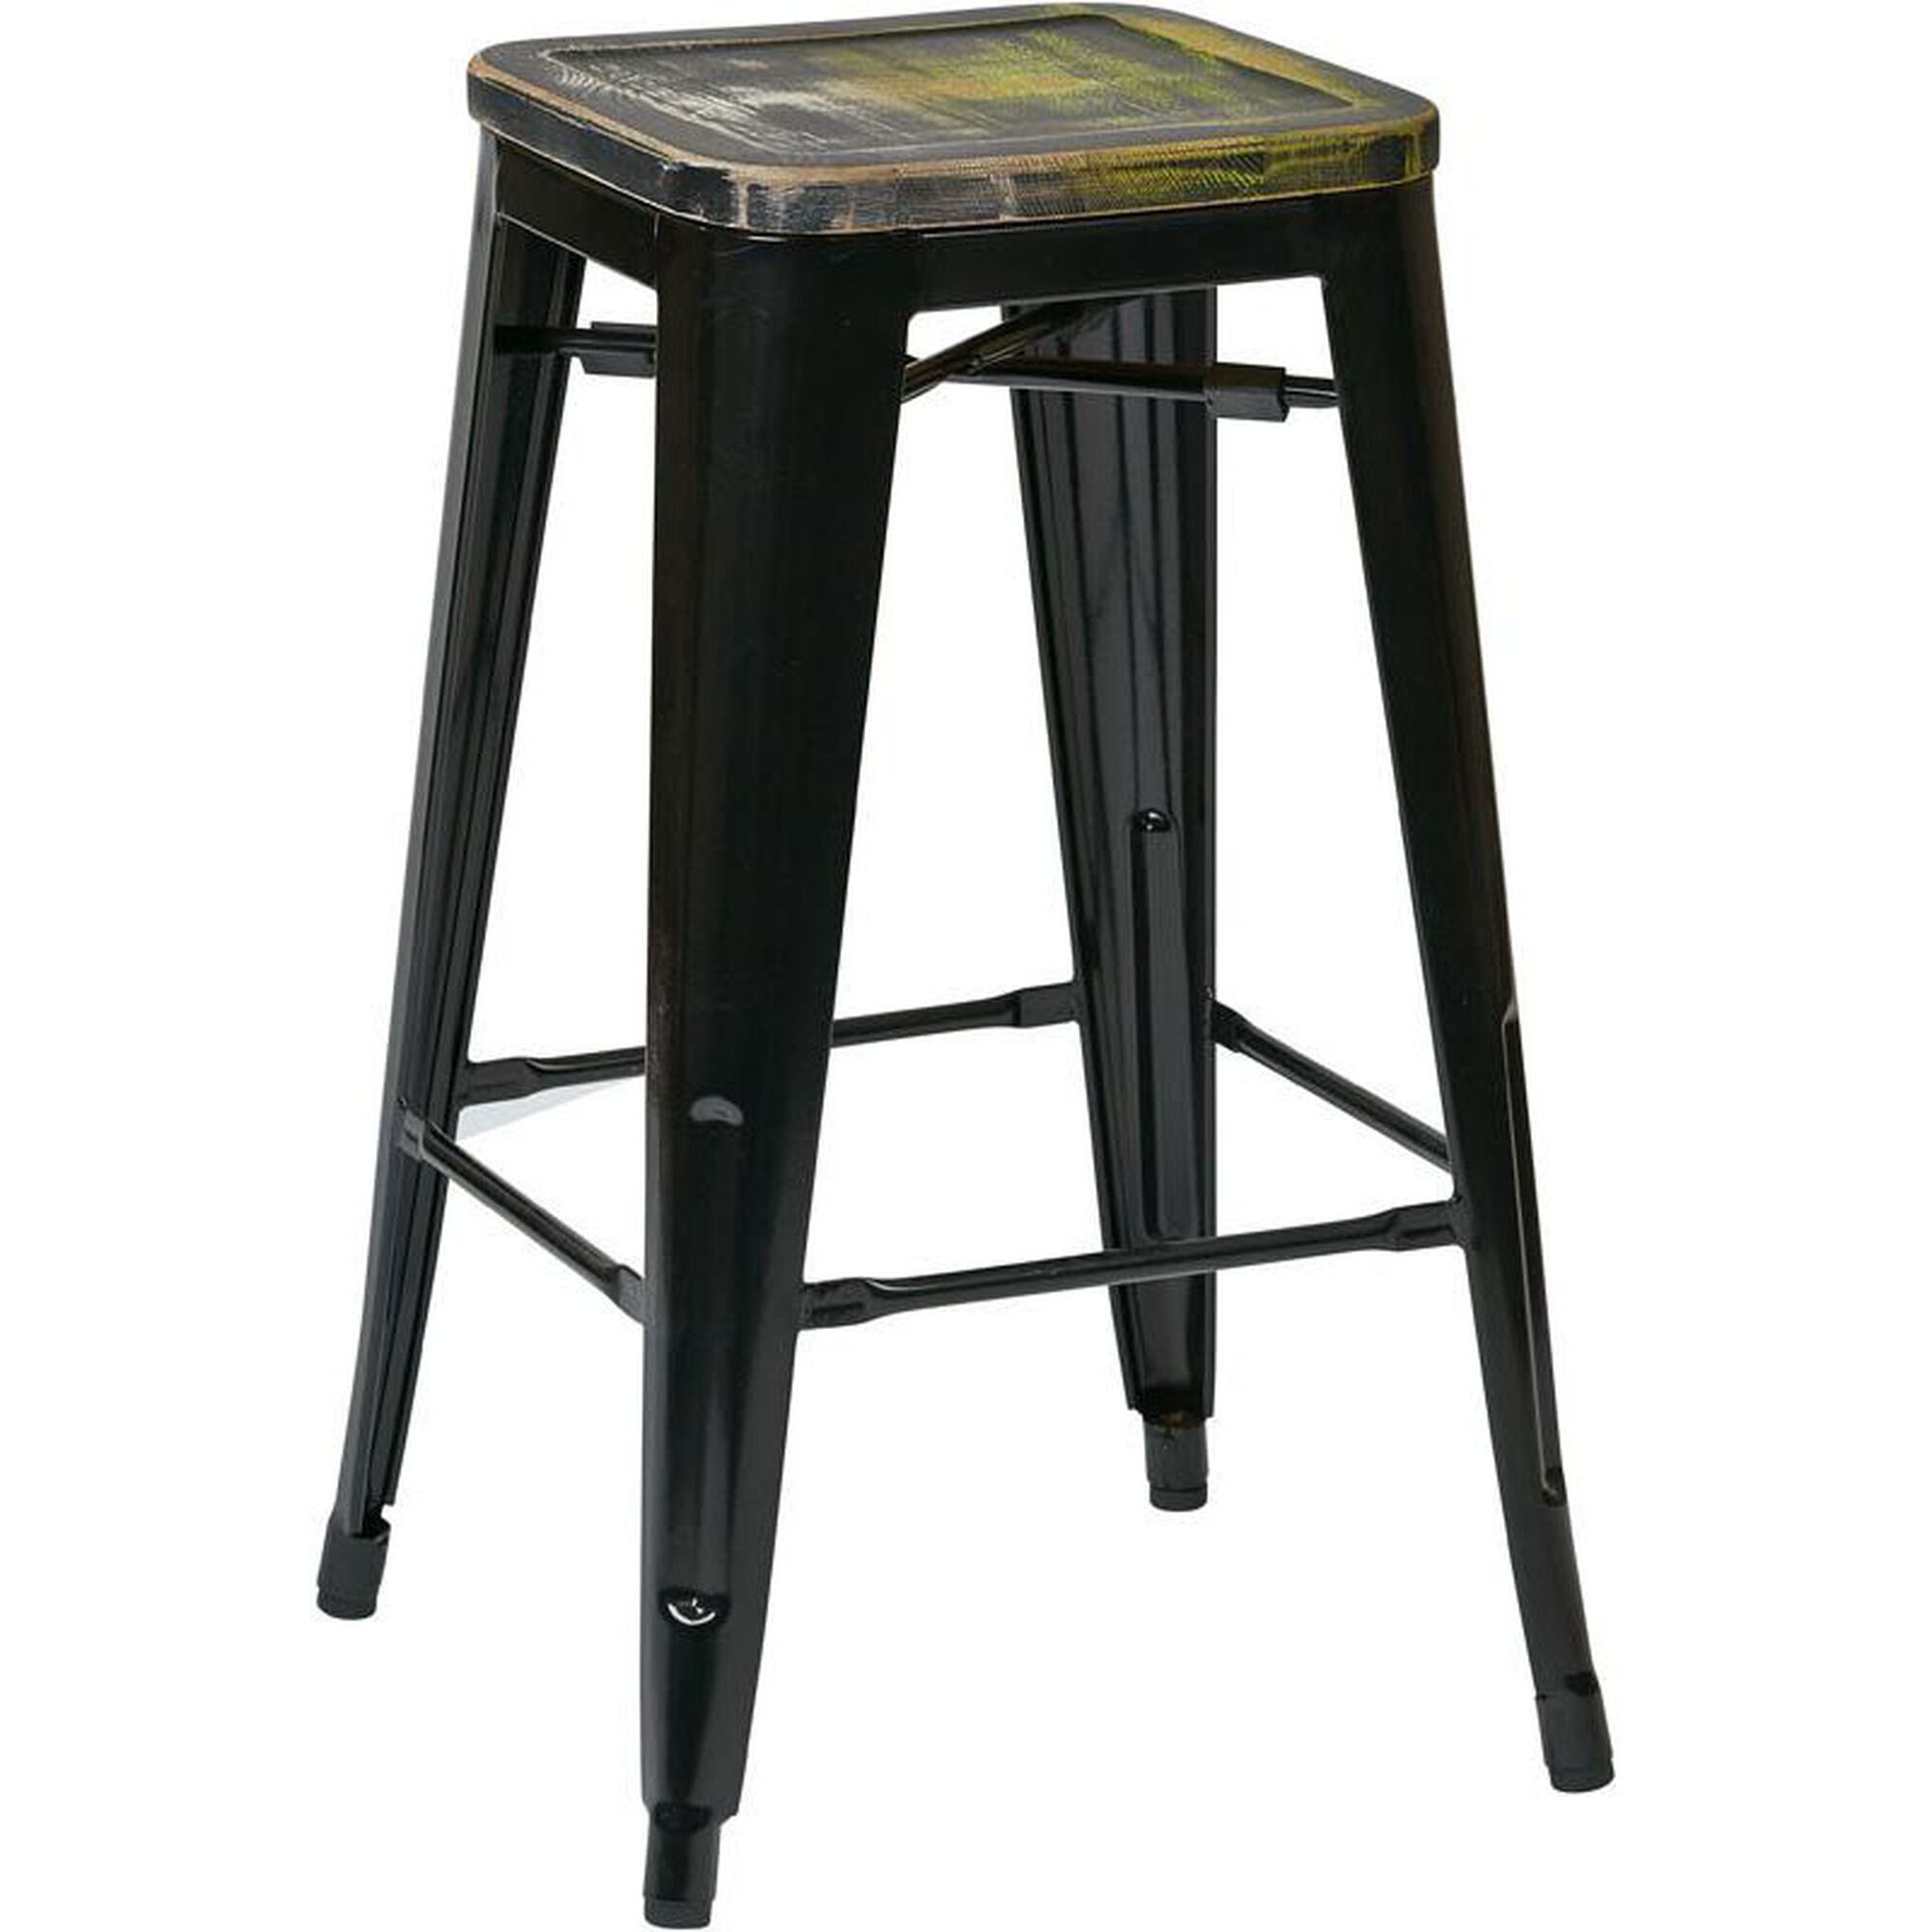 Set Of 4 Black Metal Barstool Brw31263a4 C301